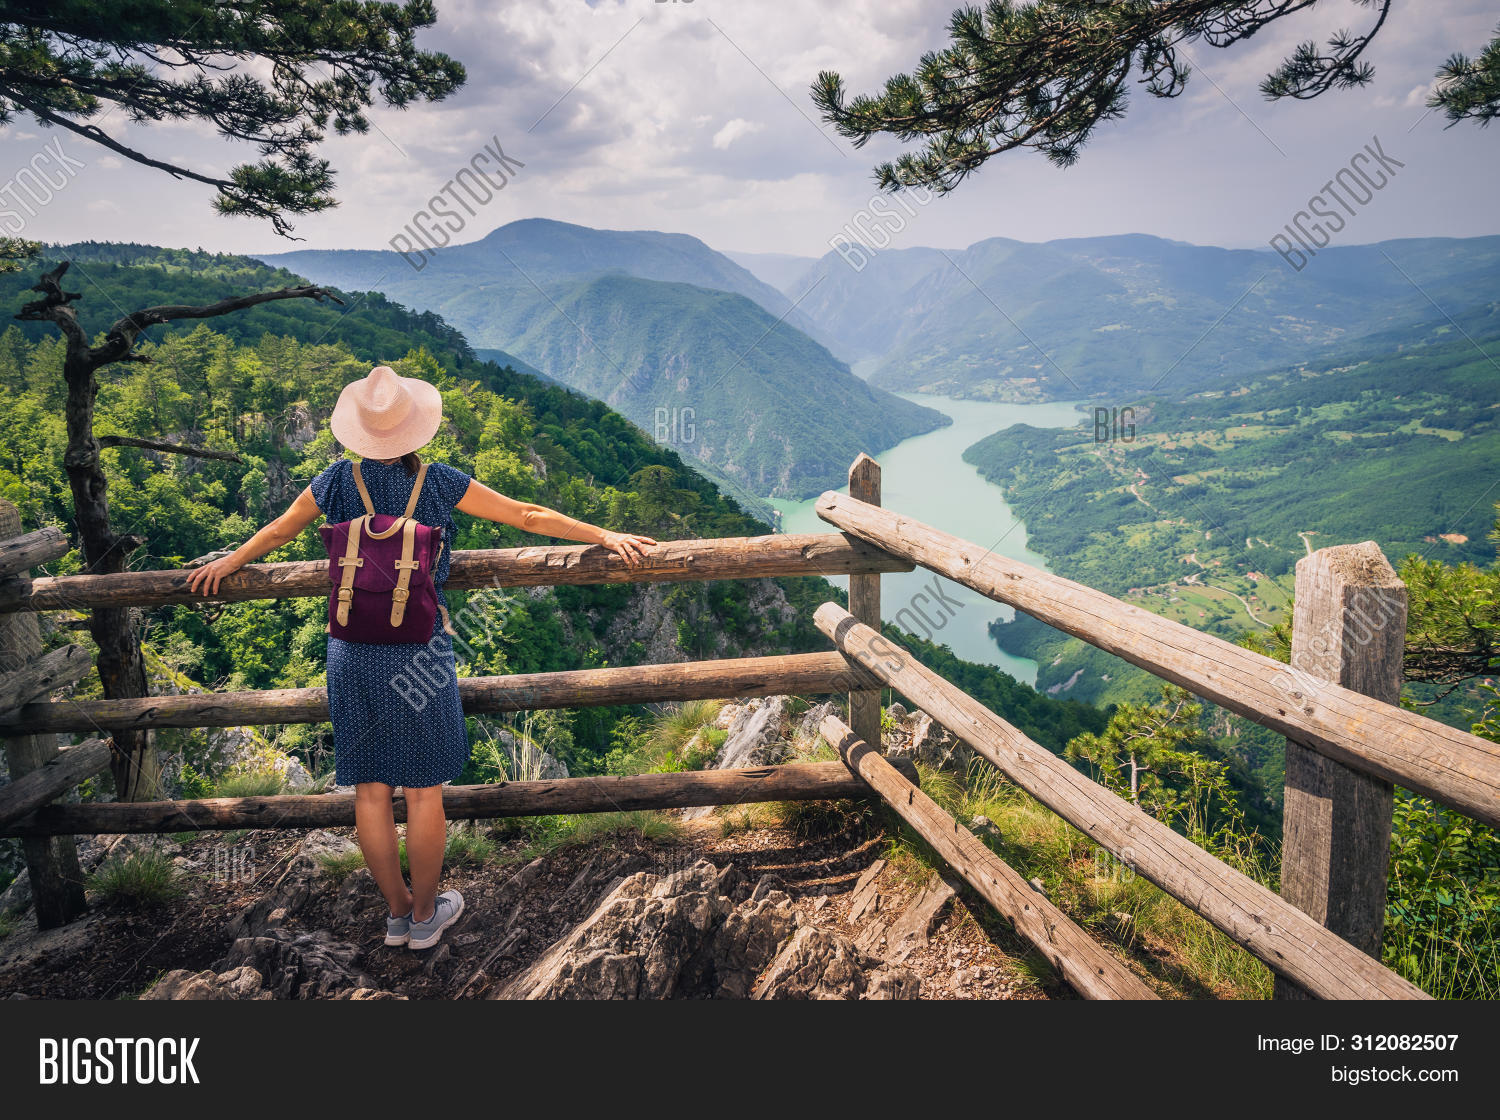 activity,adventure,backpacker,beautiful,clear,dress,enjoying,enjoyment,freedom,girl,hat,hike,hiker,hiking,hill,holiday,horizon,landscape,leisure,lifestyle,looking,mountain,nature,outdoor,purple,range,river,rock,serbia,silence,sitting,sky,success,summer,sunset,tara,top,tourism,tourist,travel,traveler,trekking,trip,valley,view,woman